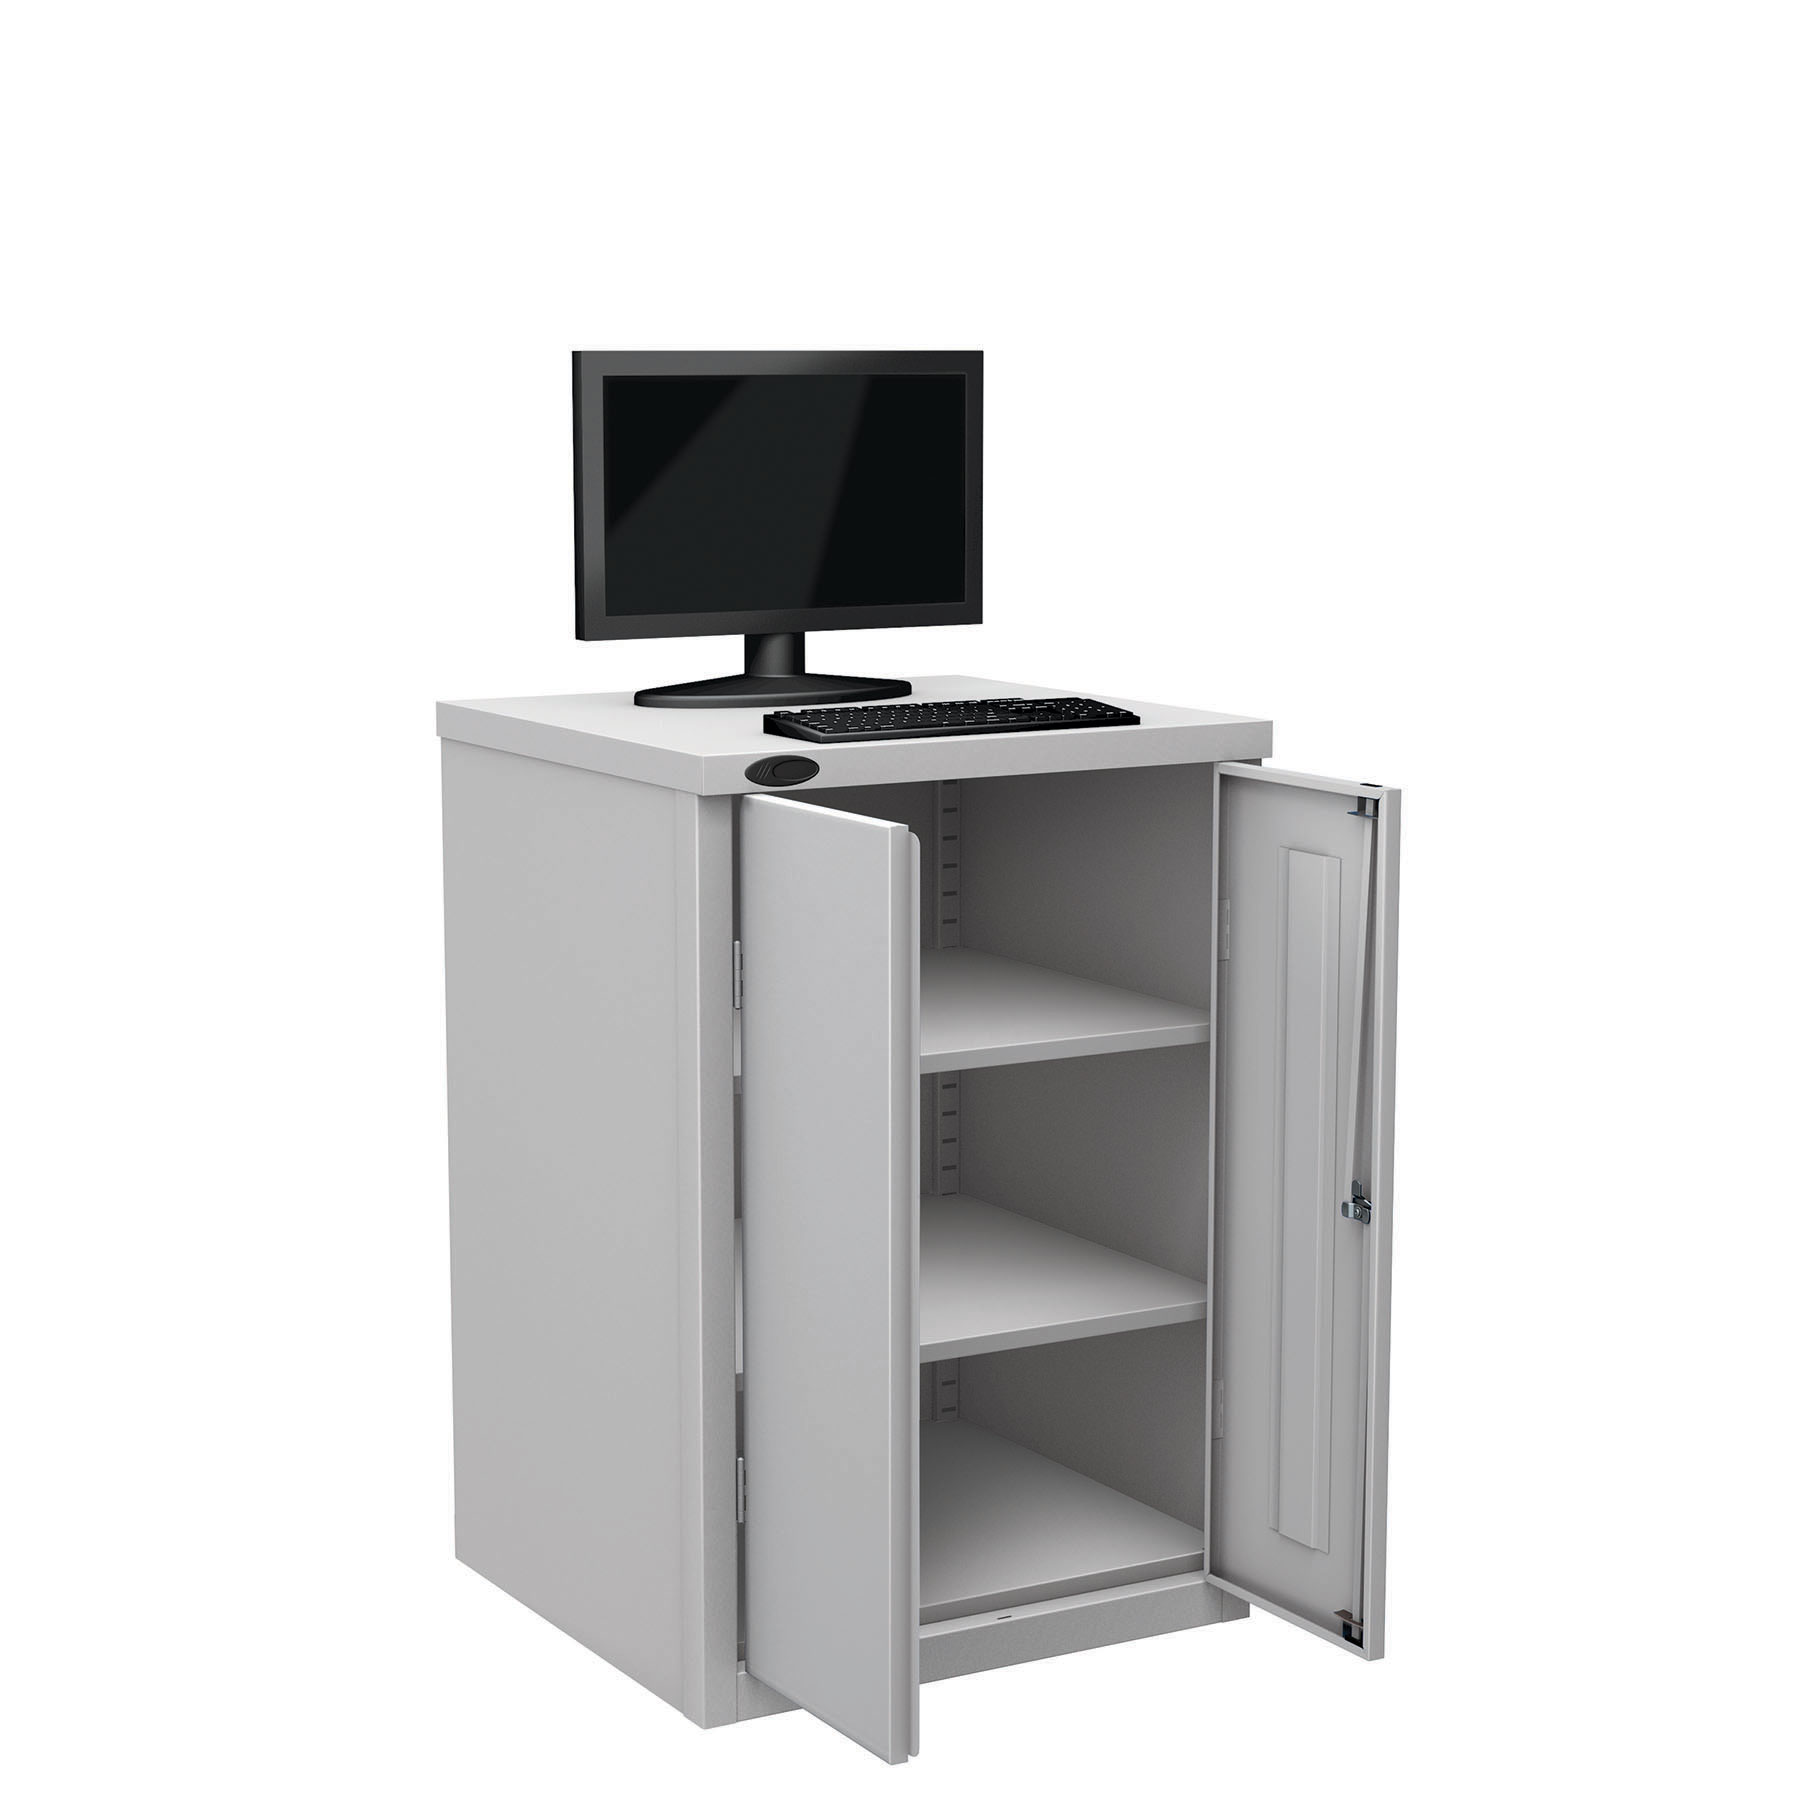 Probe workstation base monitor silver